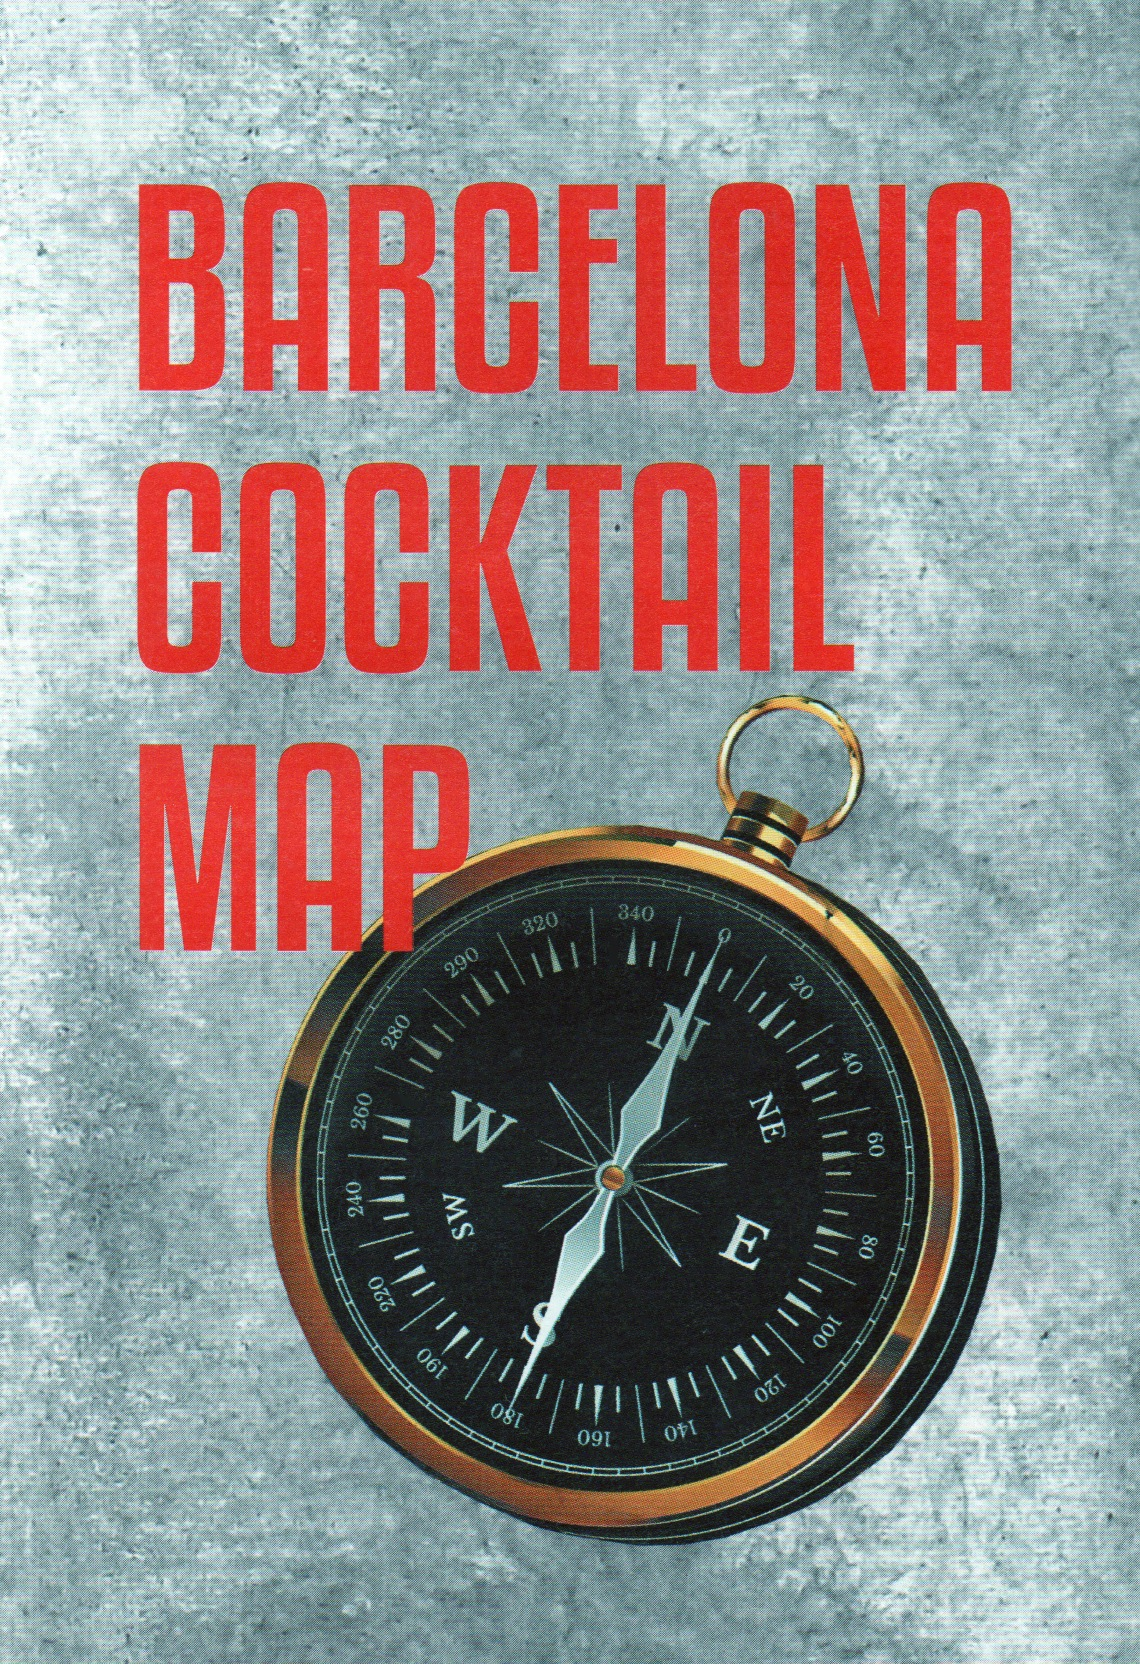 barcelona cocktail map